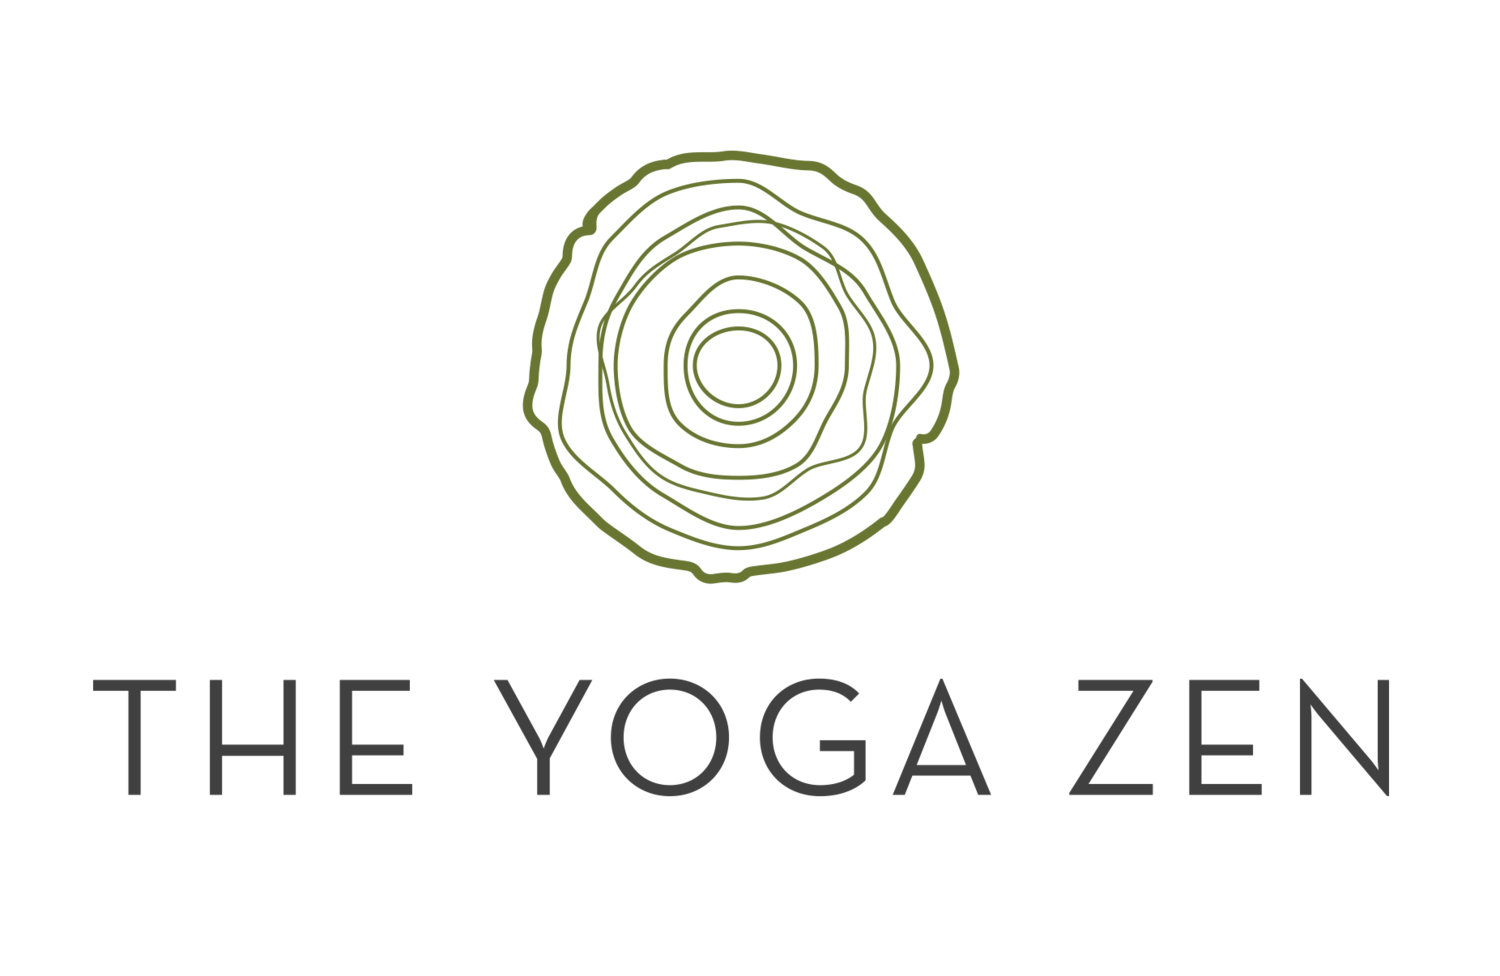 The Yoga Zen